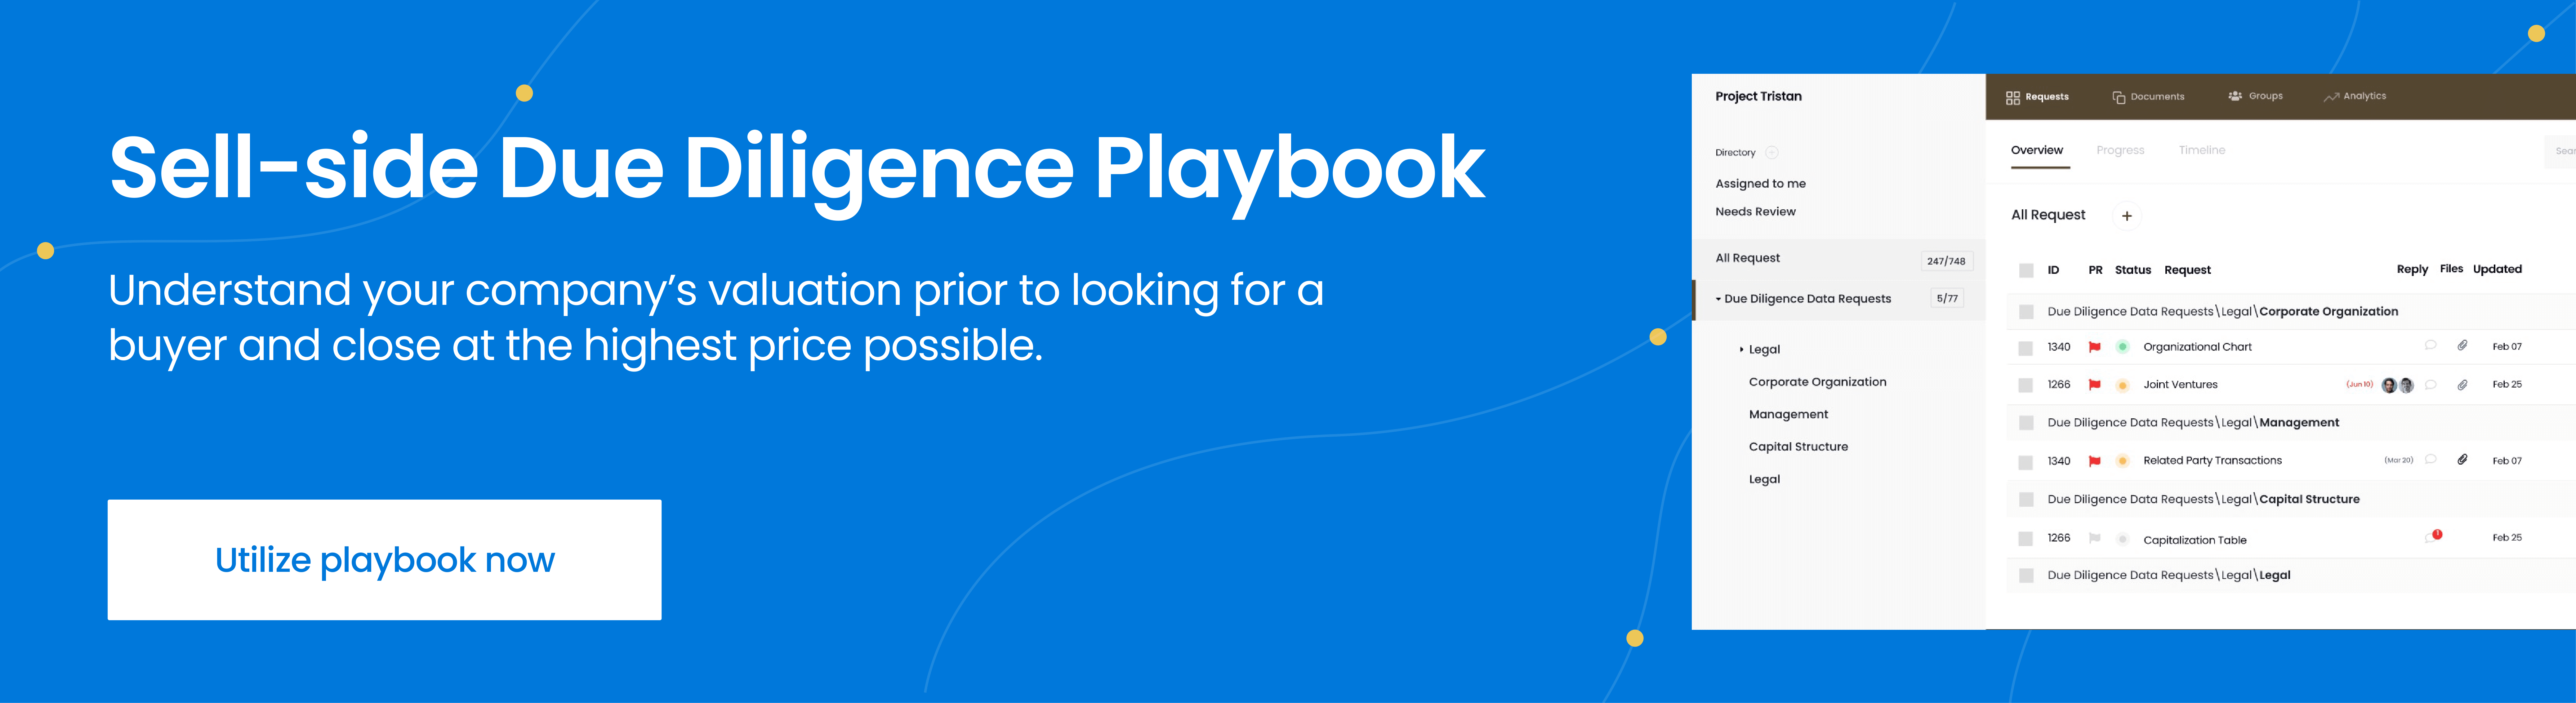 sell-side due diligence playbook